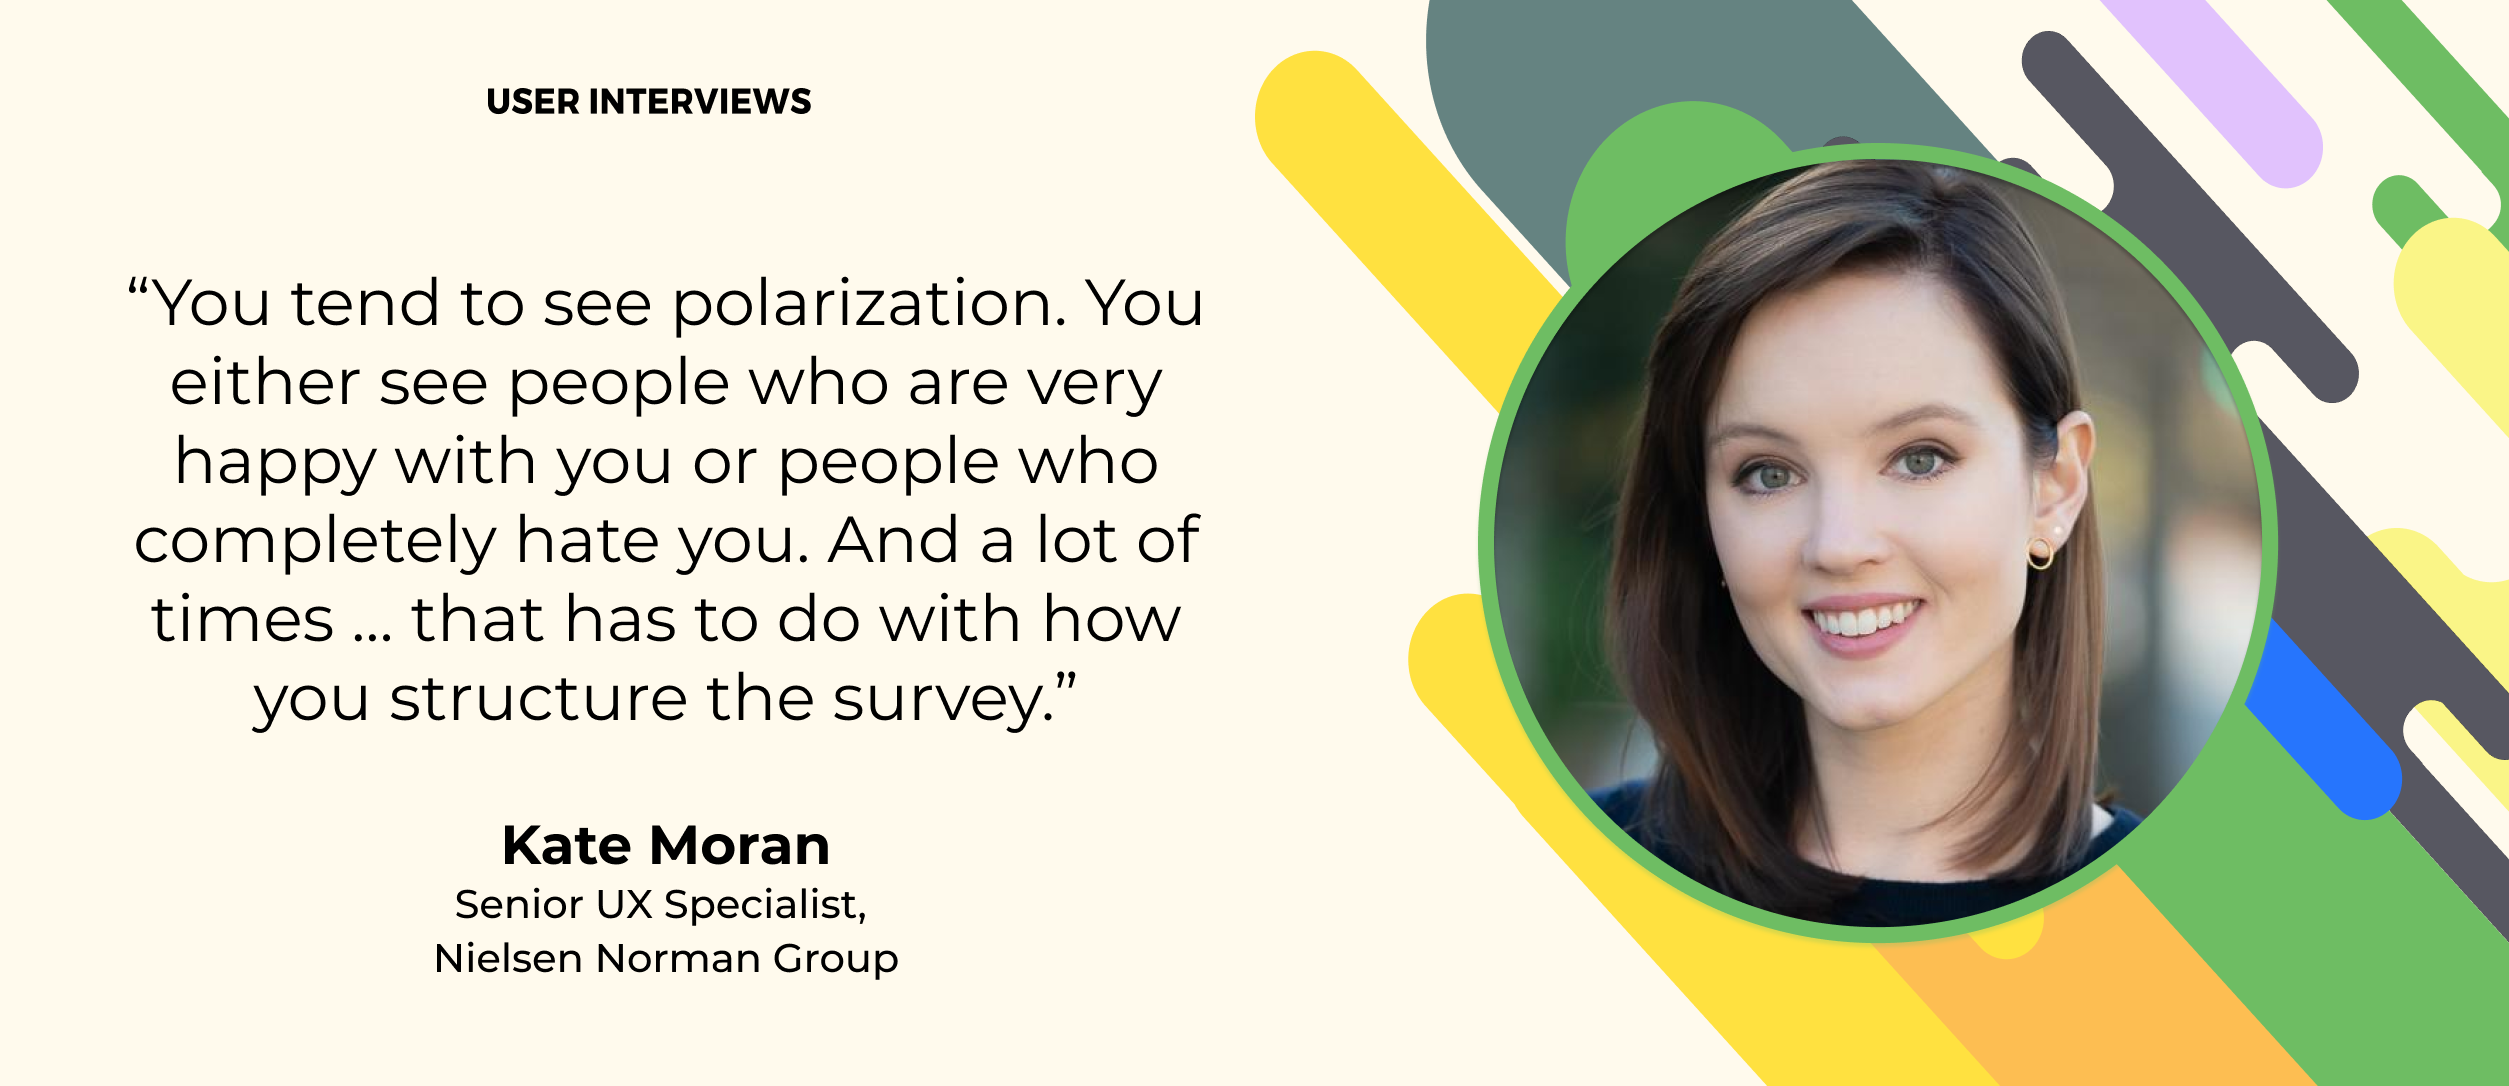 kate moran from nielsen norman group quote about user research survey design